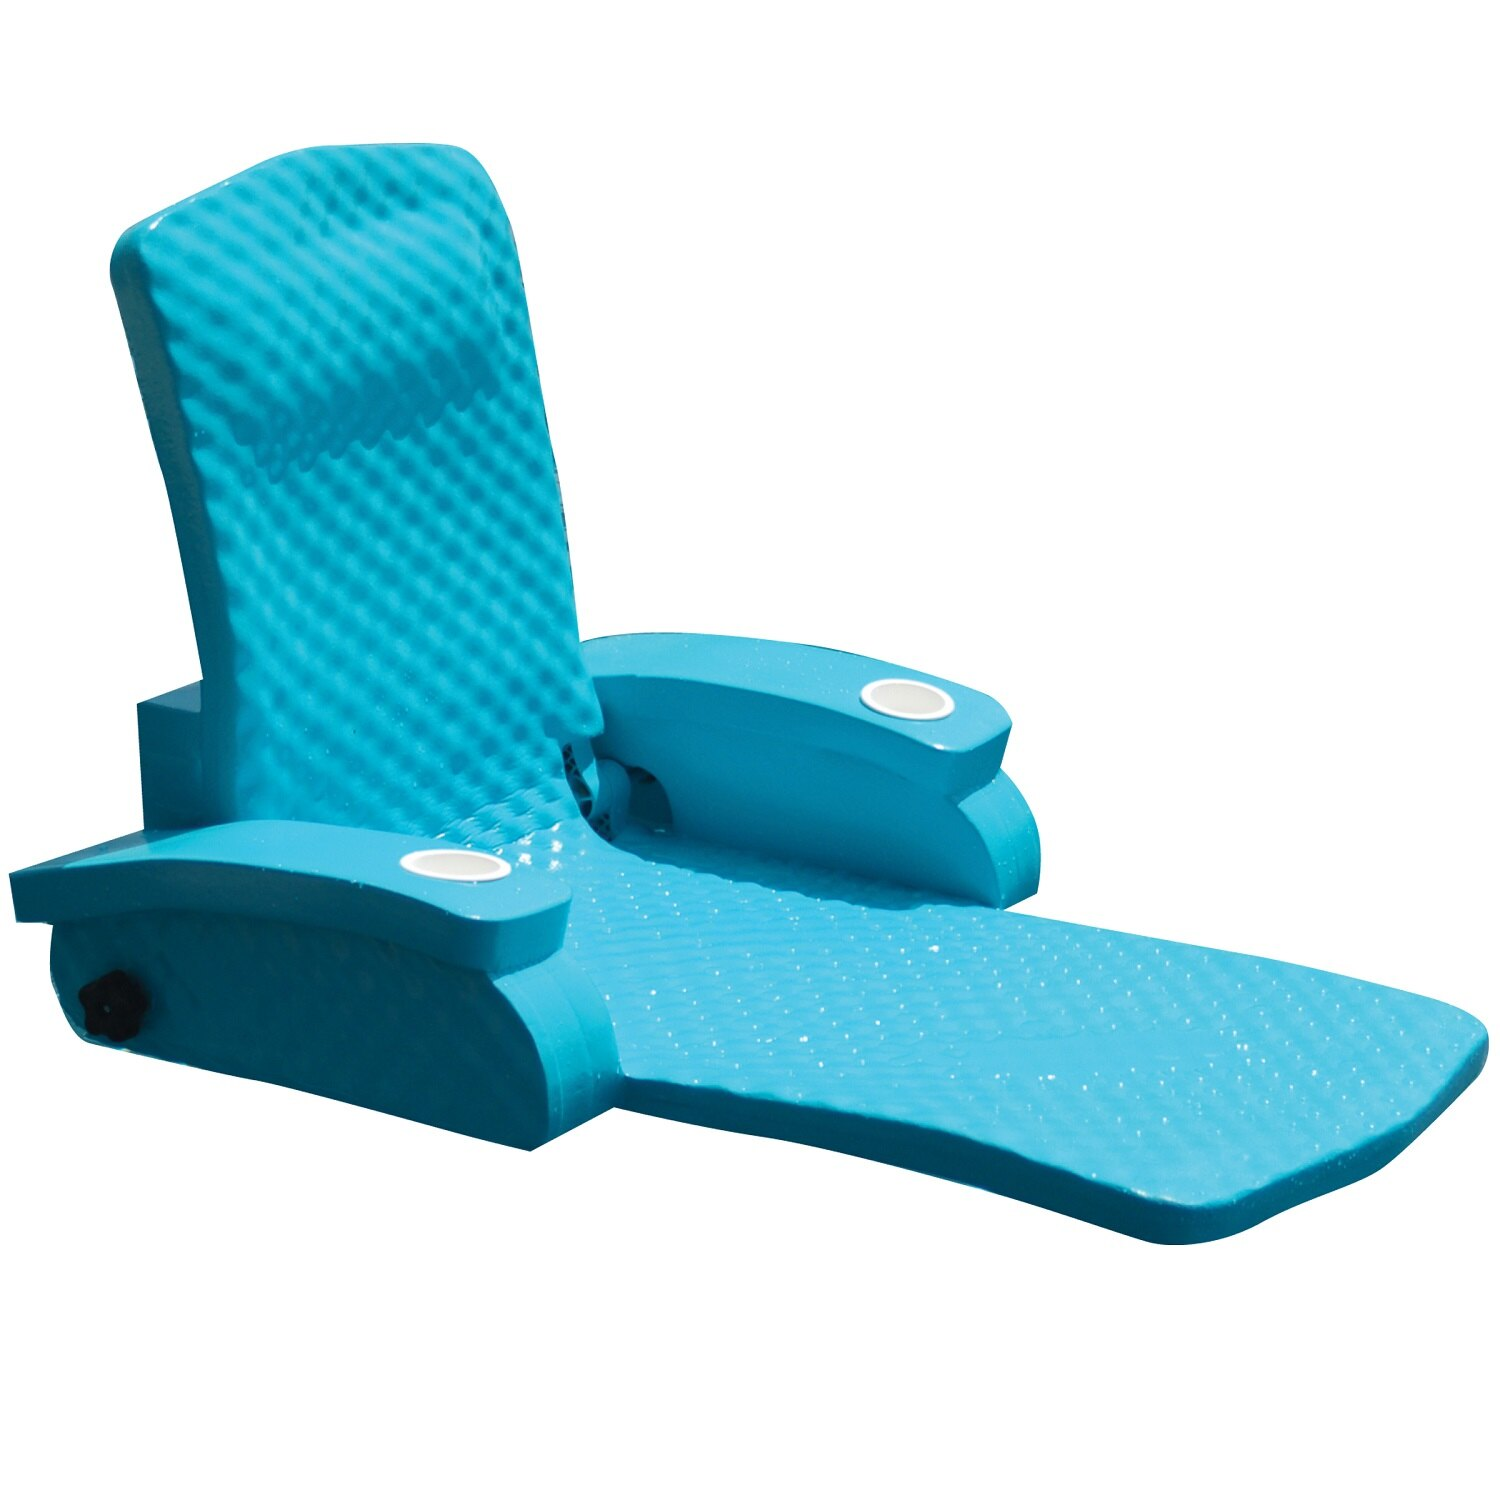 The Roost Trc Recreation Super Soft Adjustable Recliner